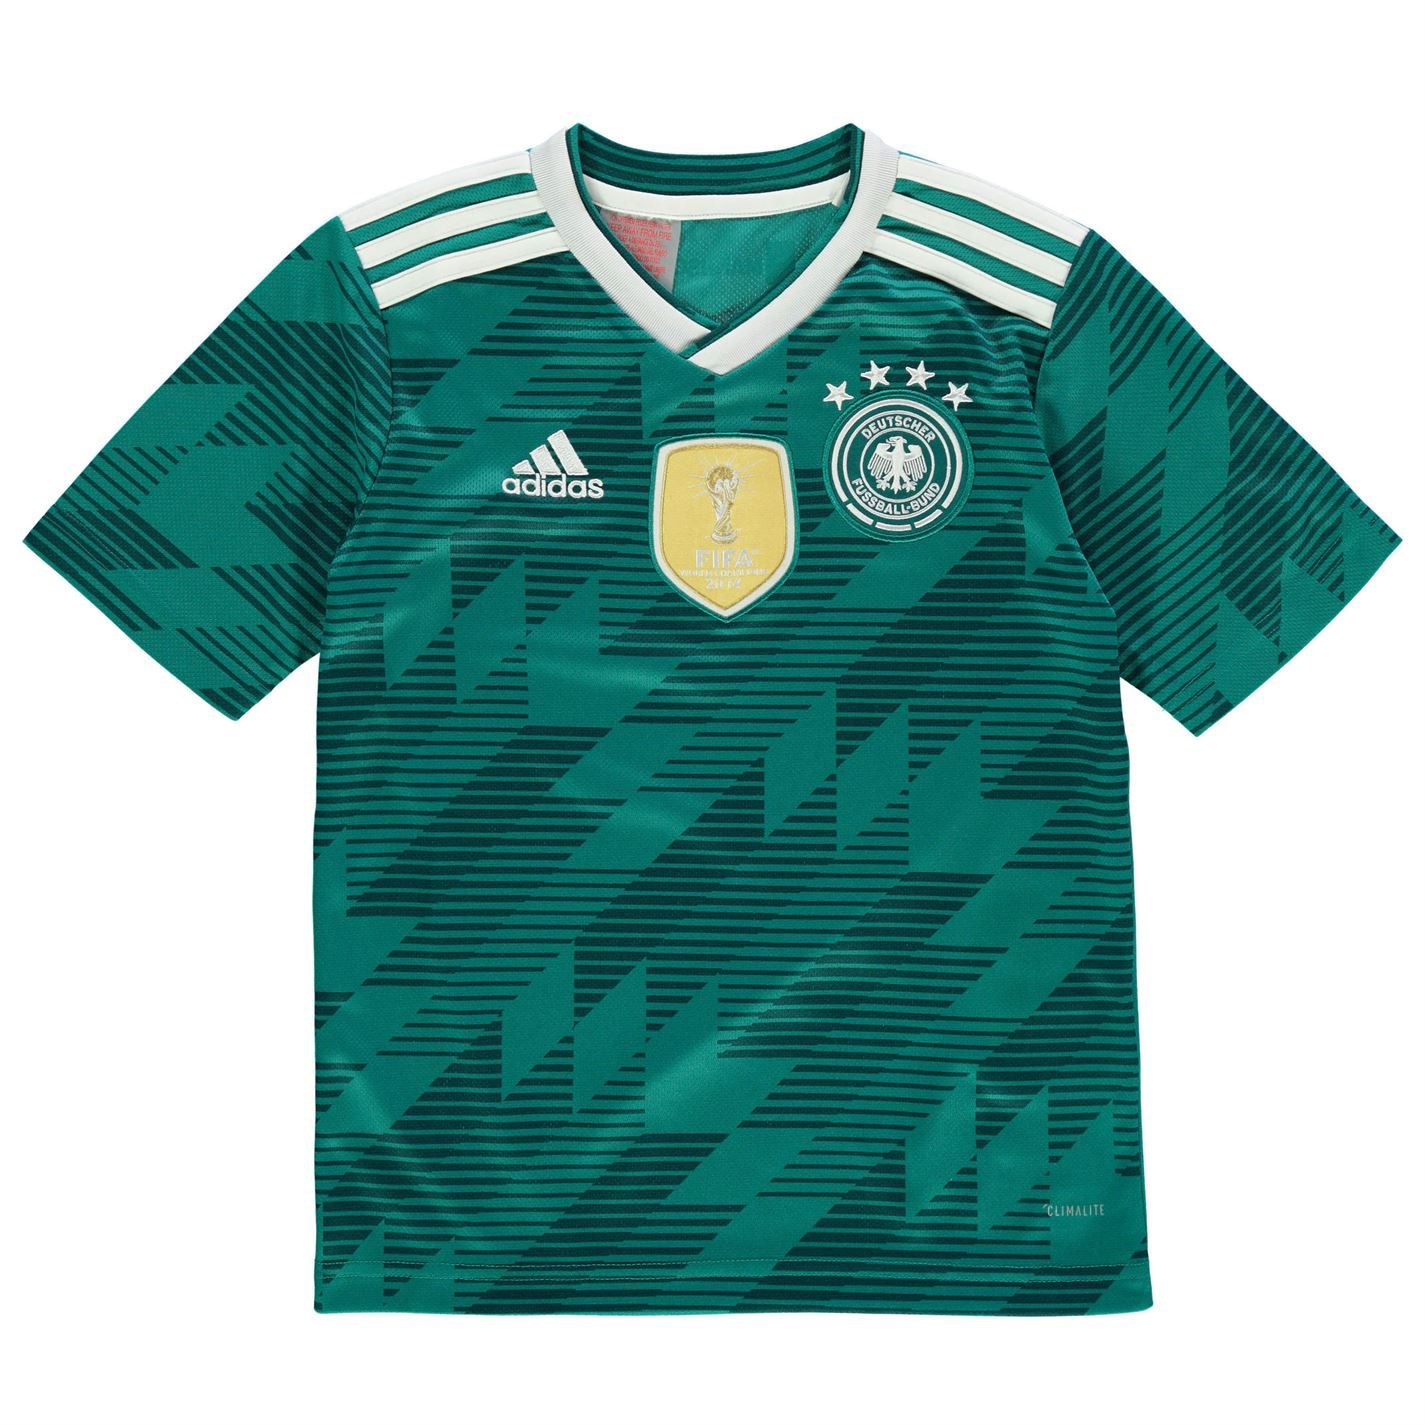 47a1d1f49d3 adidas Germany Away Jersey 2018 Juniors Green White Football Soccer Top  Shirt